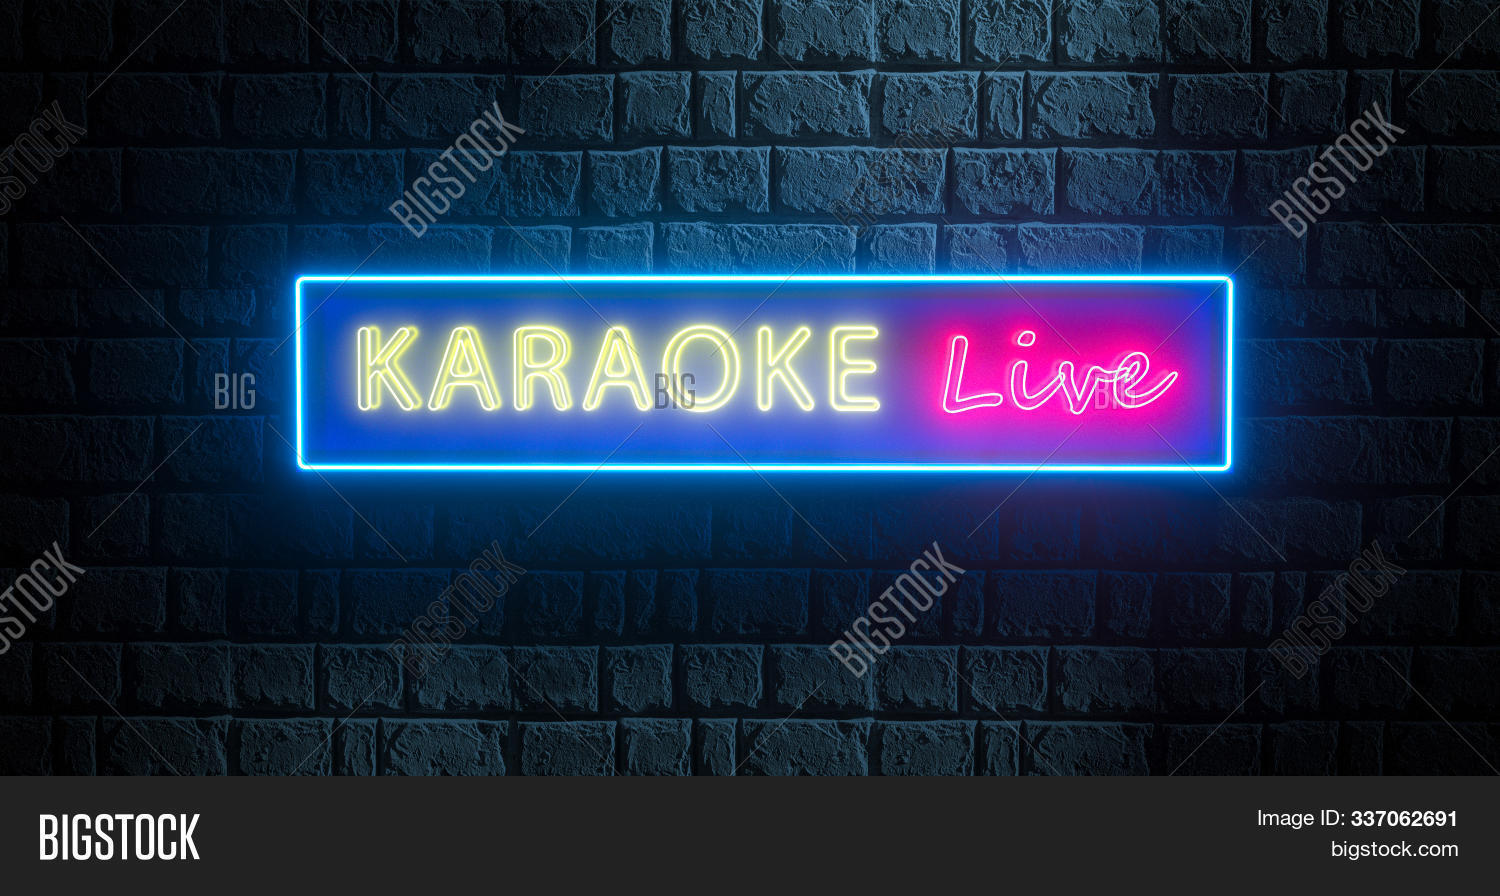 3d,abstract,advertising,background,banner,bar,battle,billboard,blue,brick,bright,club,color,concept,concert,design,disco,entertainment,event,frame,glowing,illuminated,illustration,karaoke,light,live,music,musical,neon,night,nightclub,nightlife,outside,party,pink,red,render,retro,show,sign,signboard,sing,song,street,style,symbol,wall